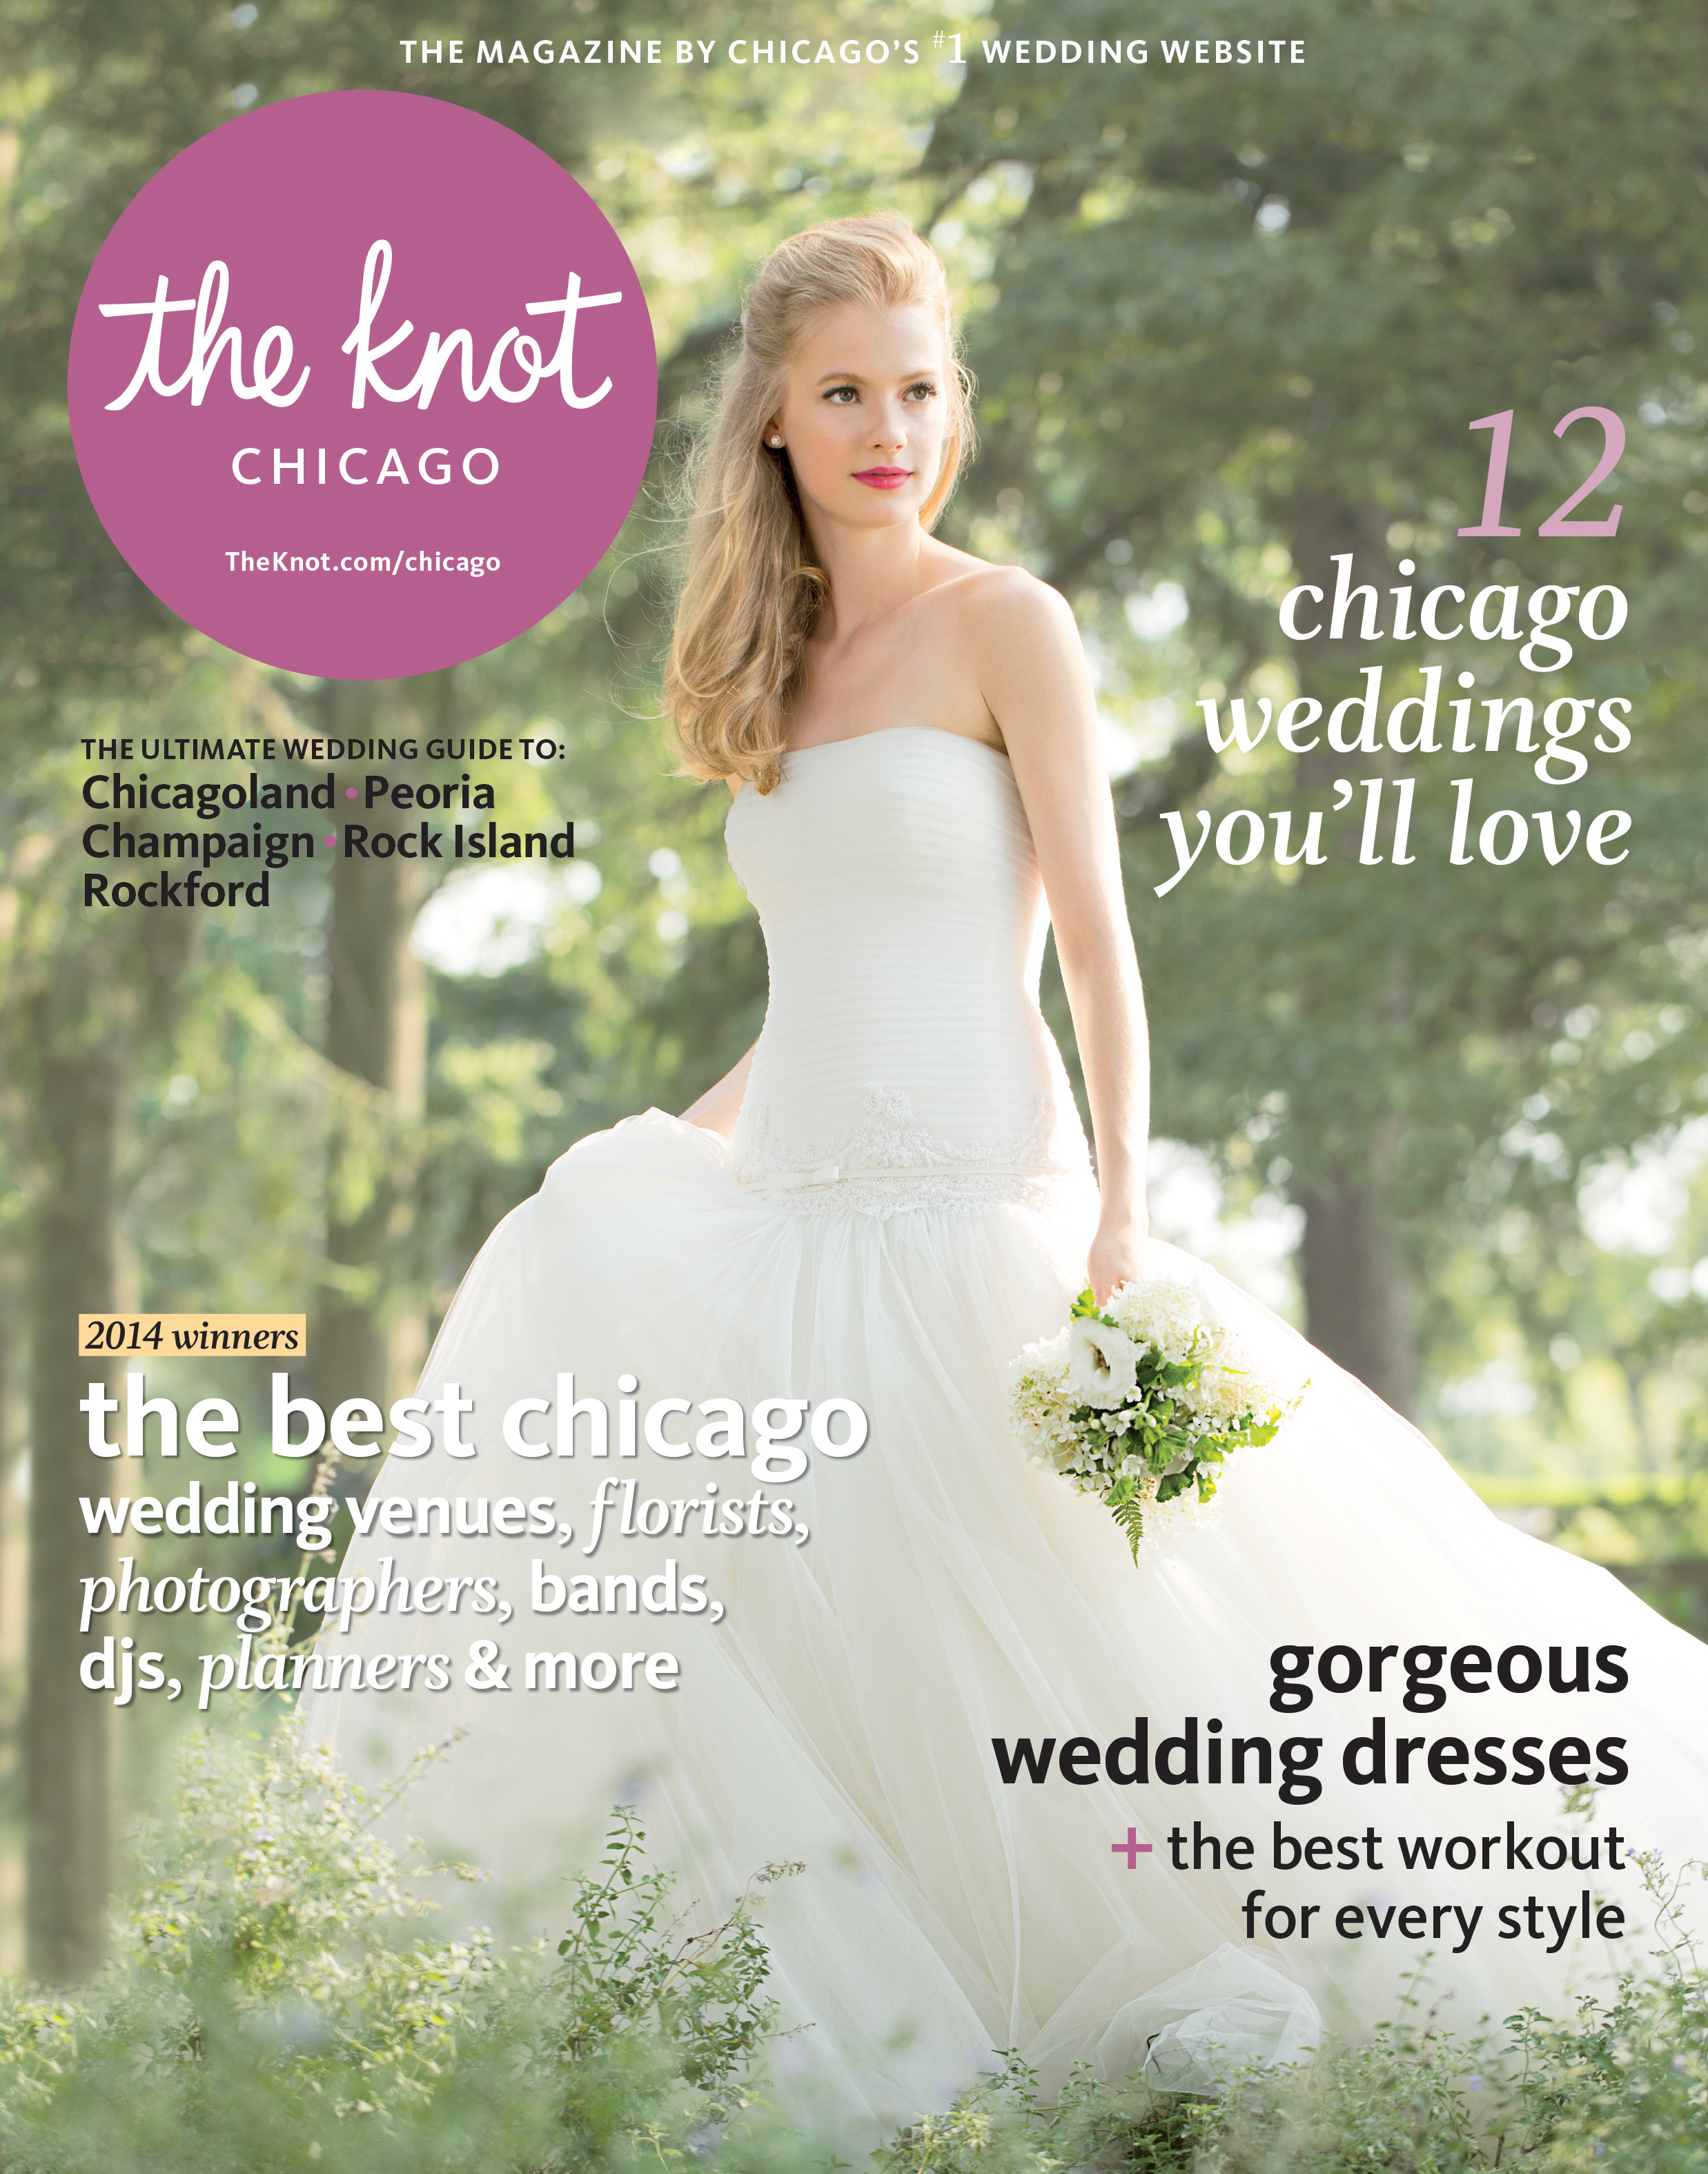 The-Knot-Chicago.jpg